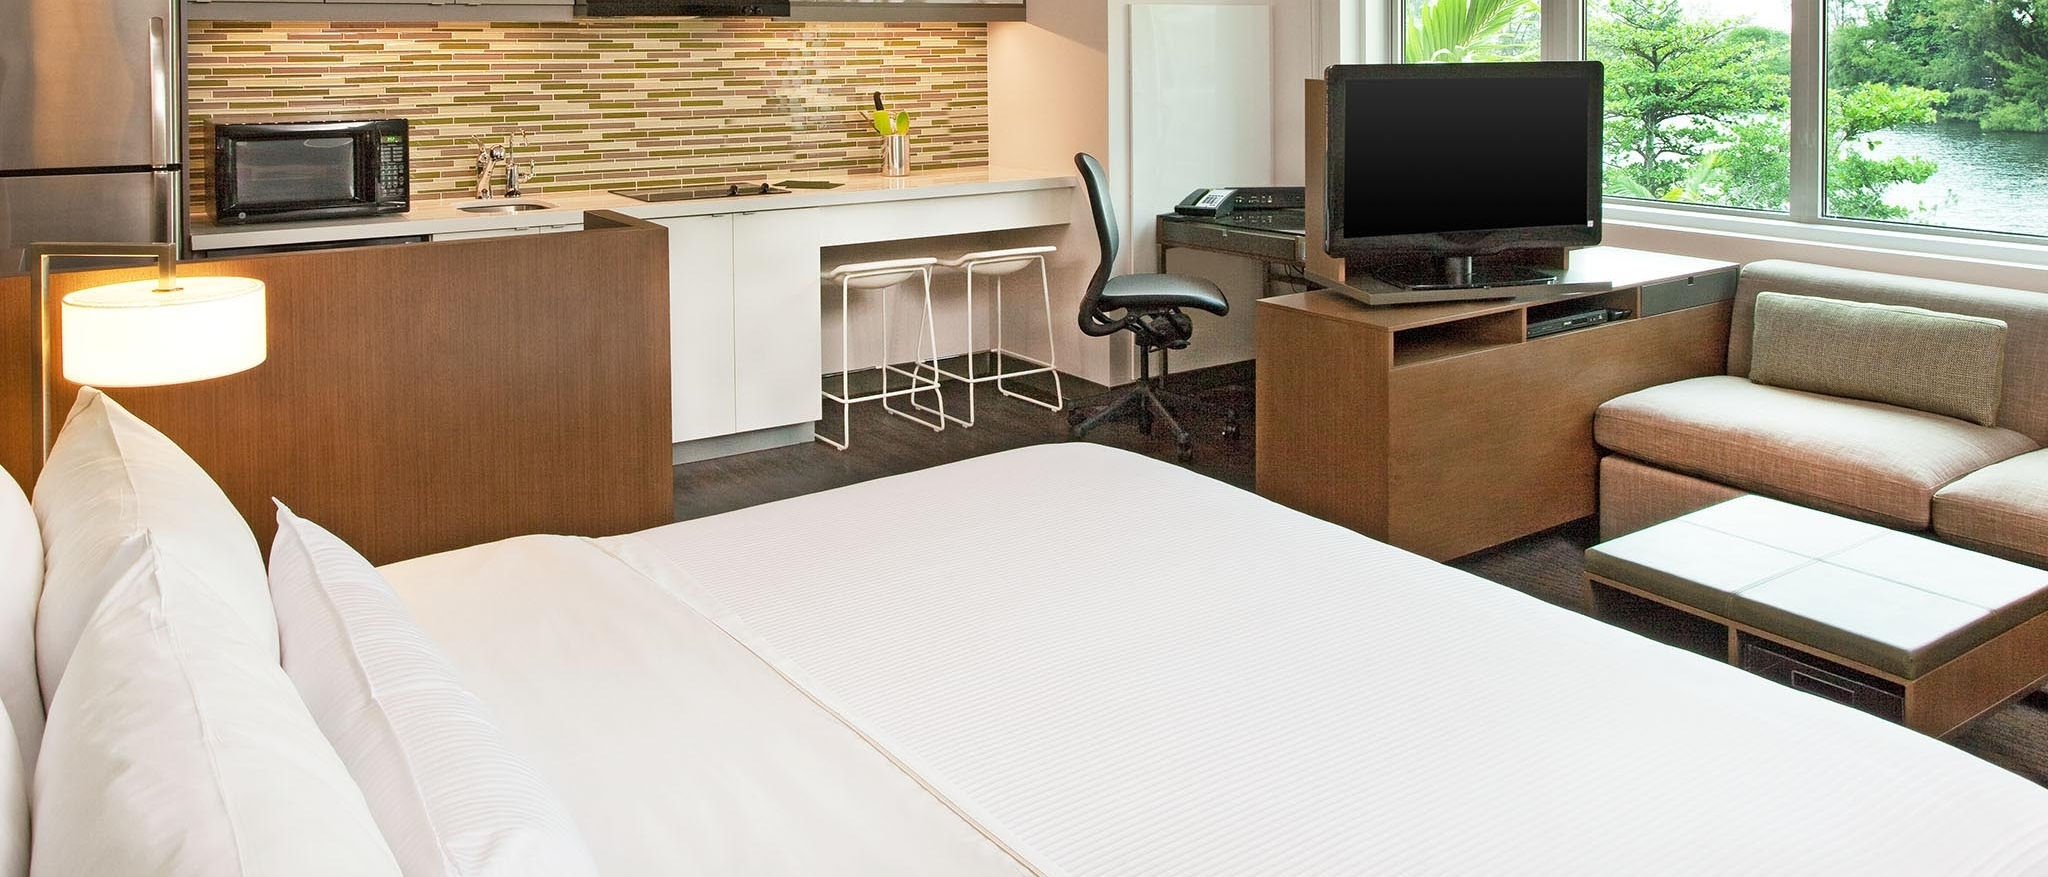 Element Miami International Airport - Guestroom